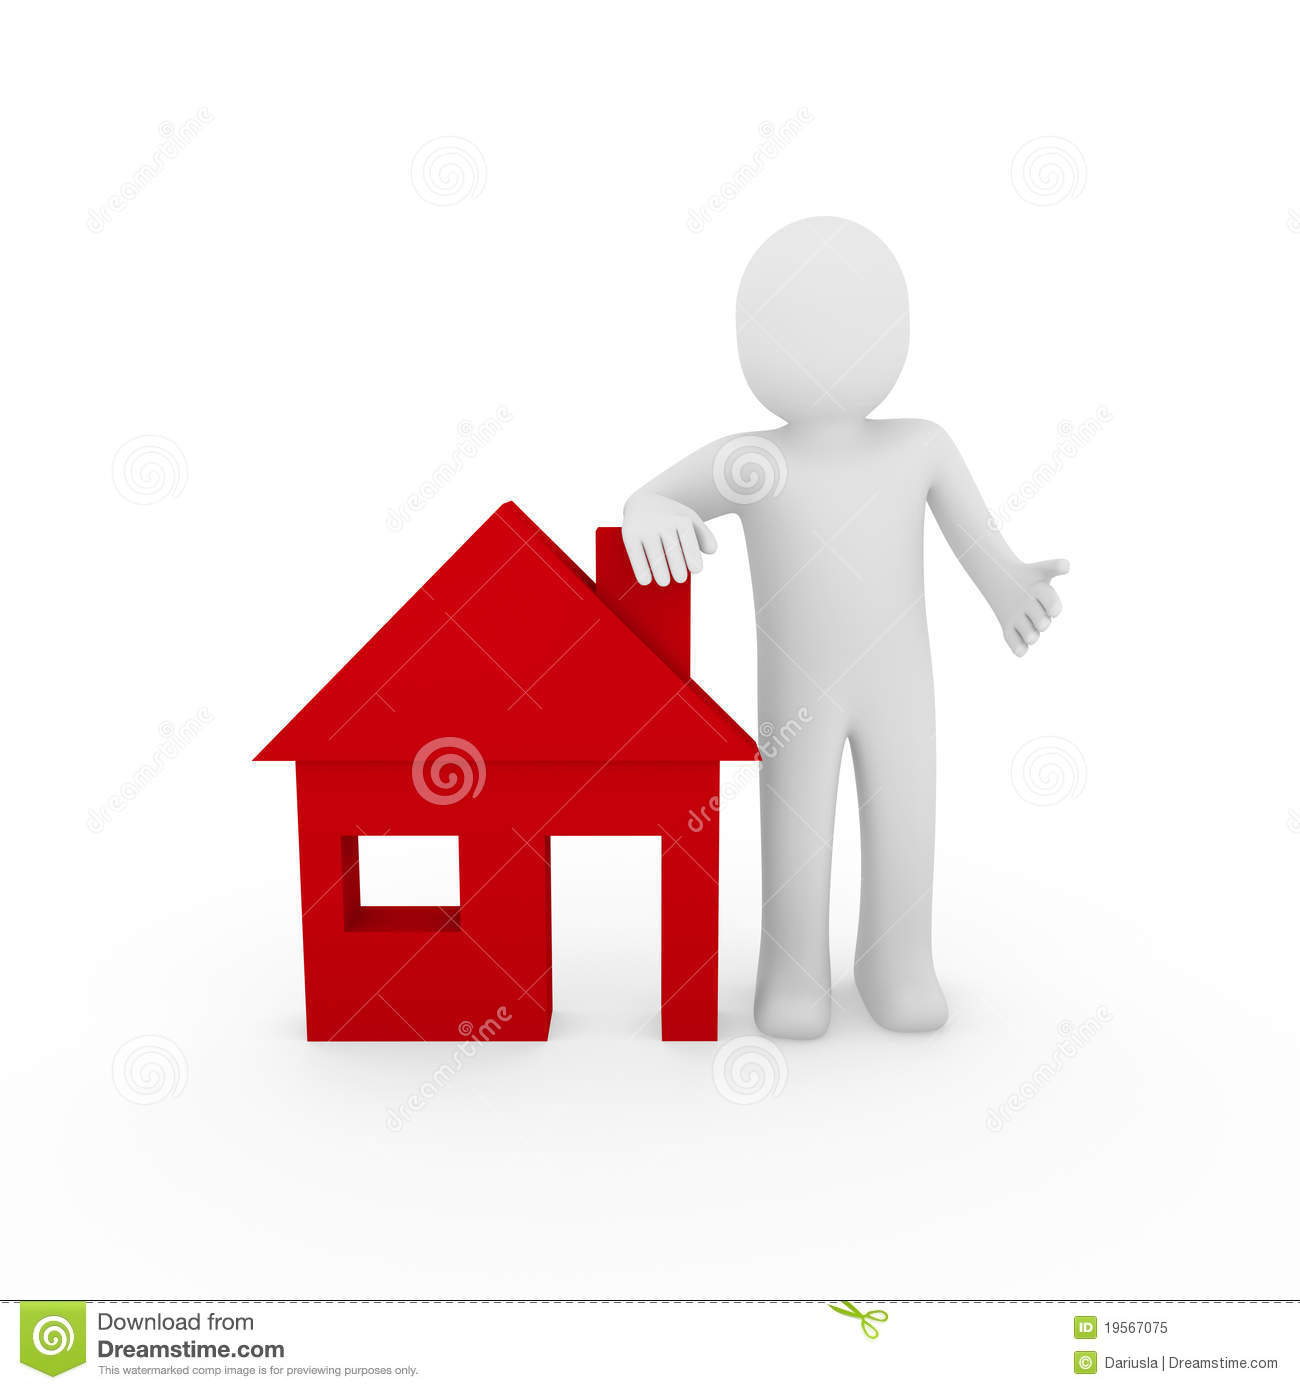 Download Free Sweet Home 3d Sweet Home 3d 4 1 Download: 3d Man House Red Stock Illustration. Illustration Of Home